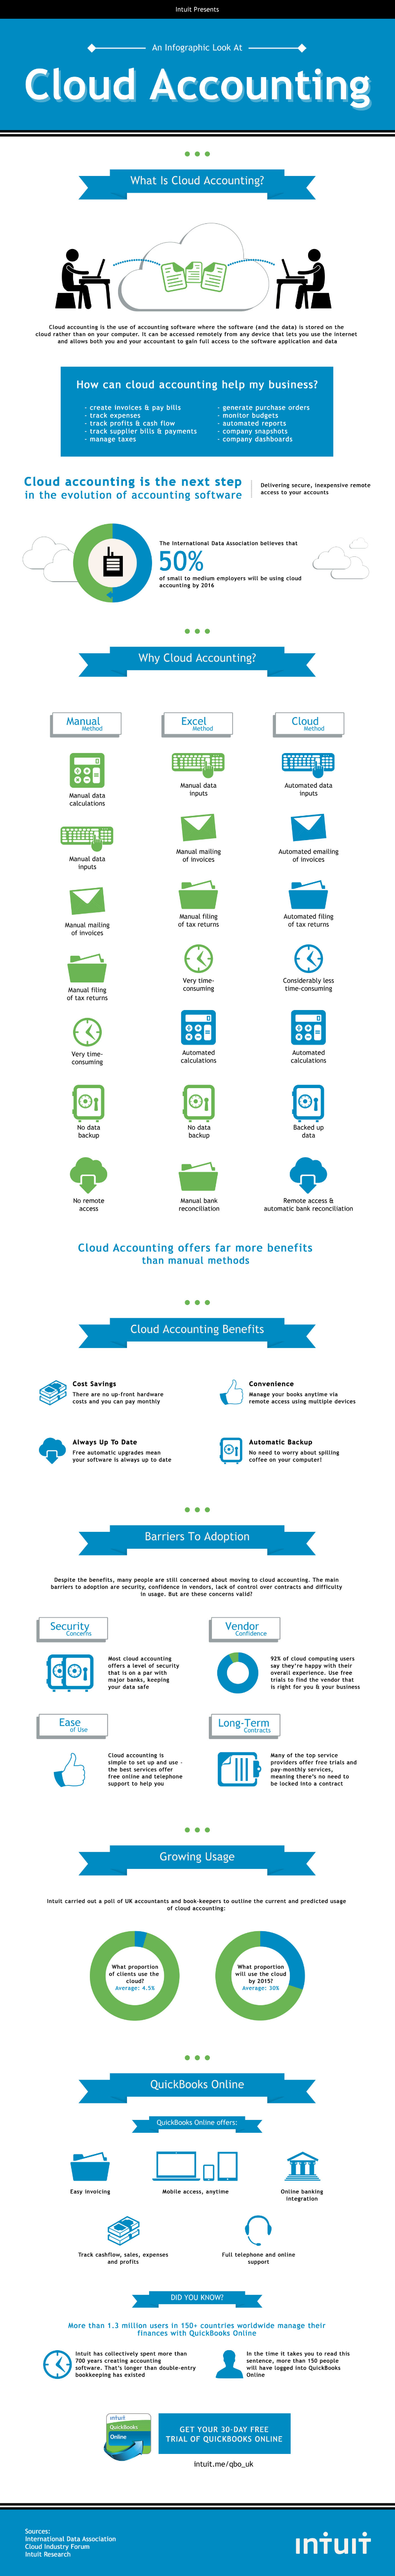 What is Cloud Accounting